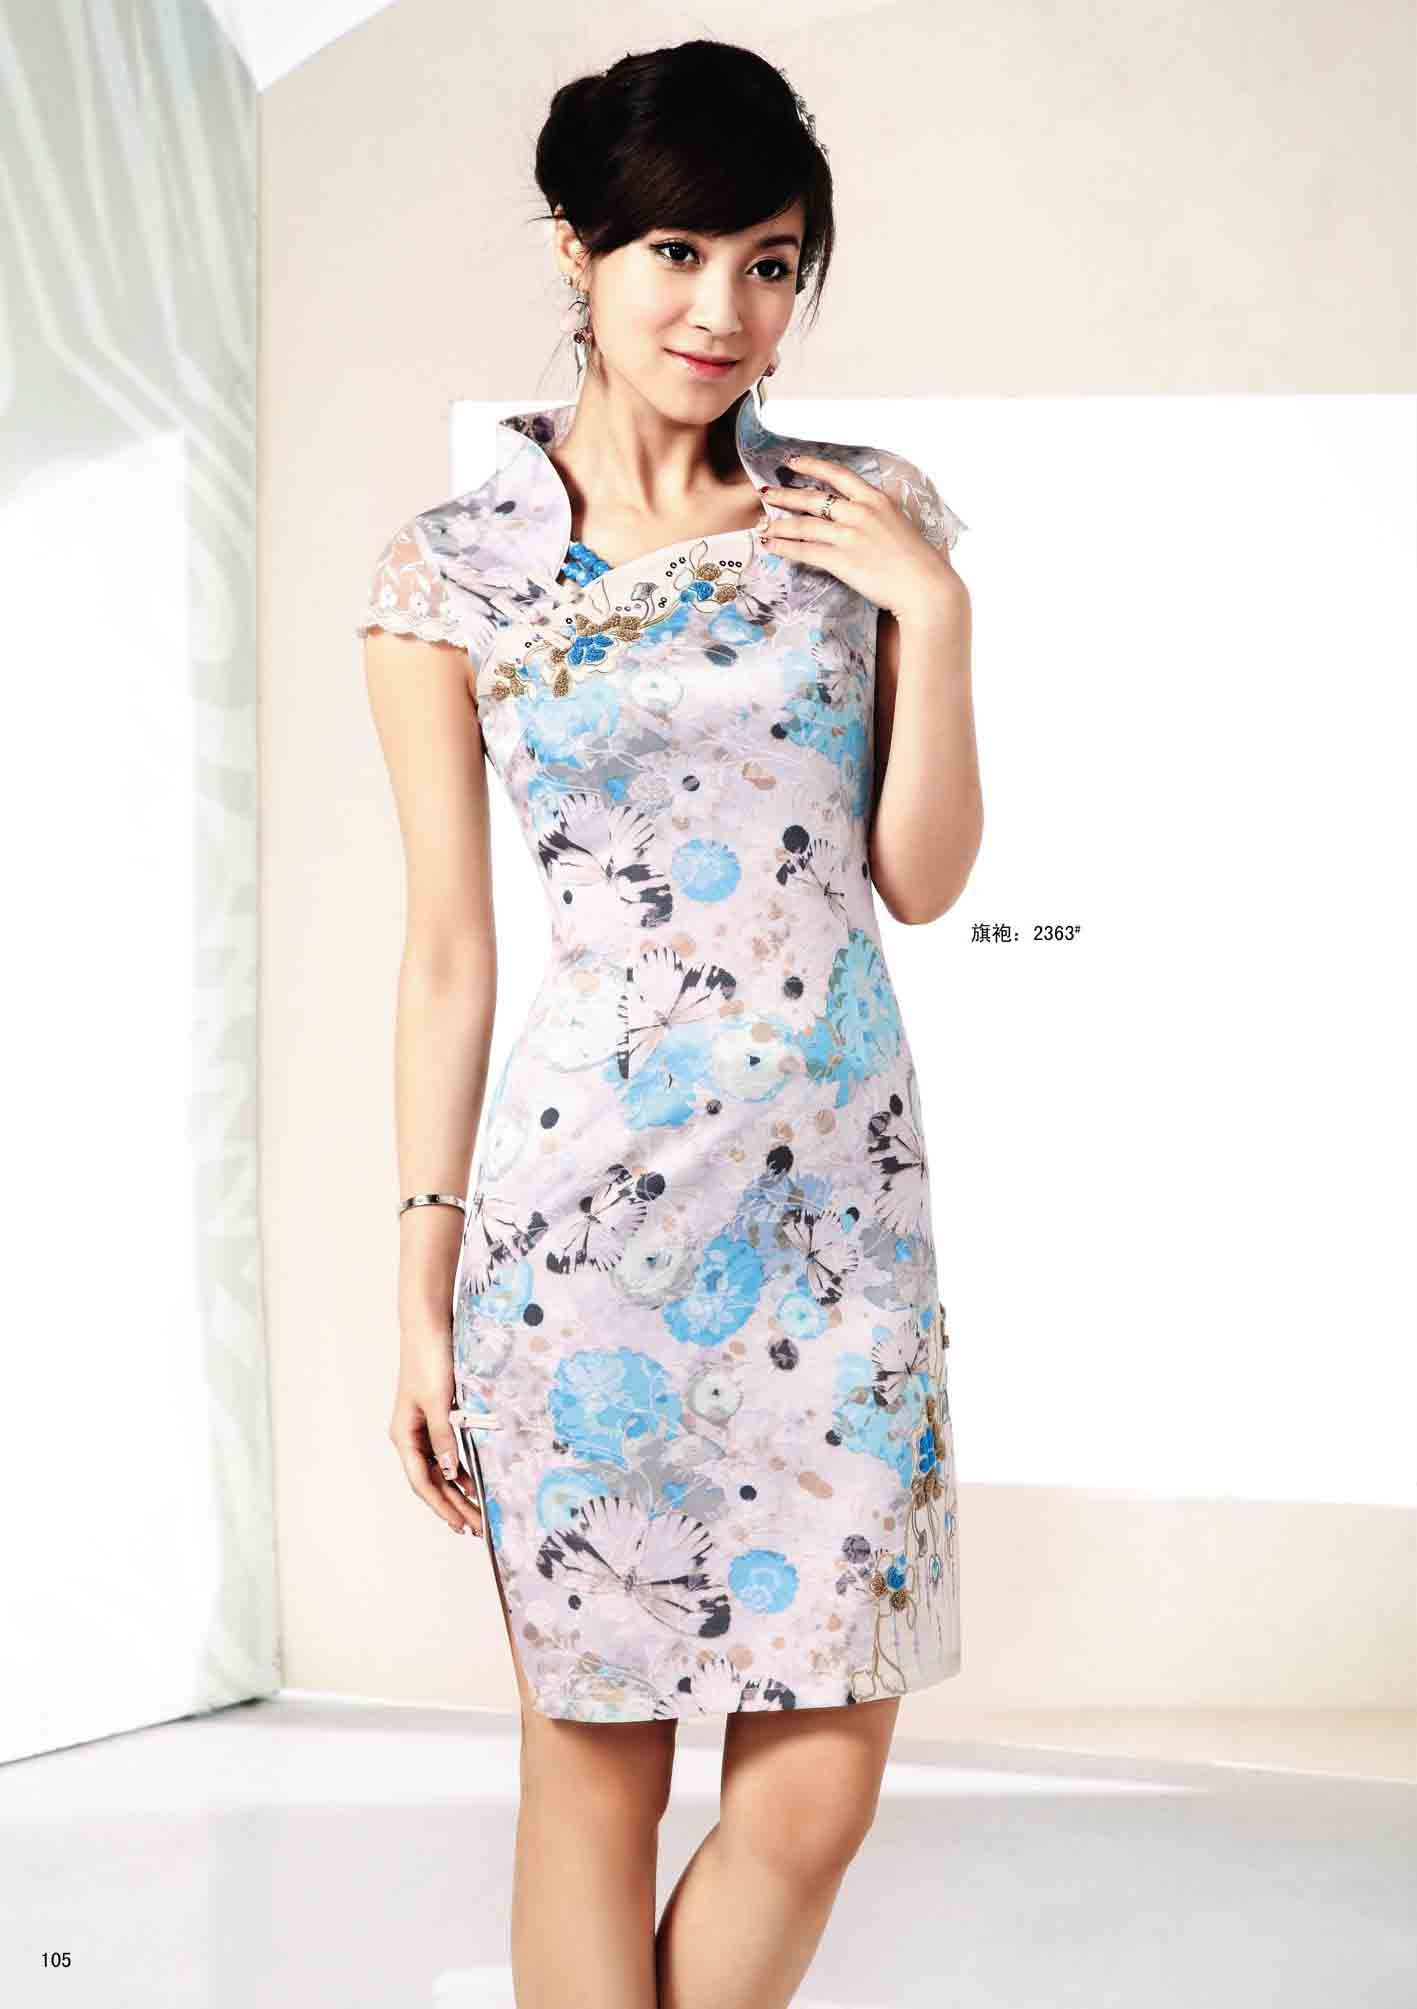 Chinese Style Girl's Dresses (2363) - China Dresses, Cocktail Dresses